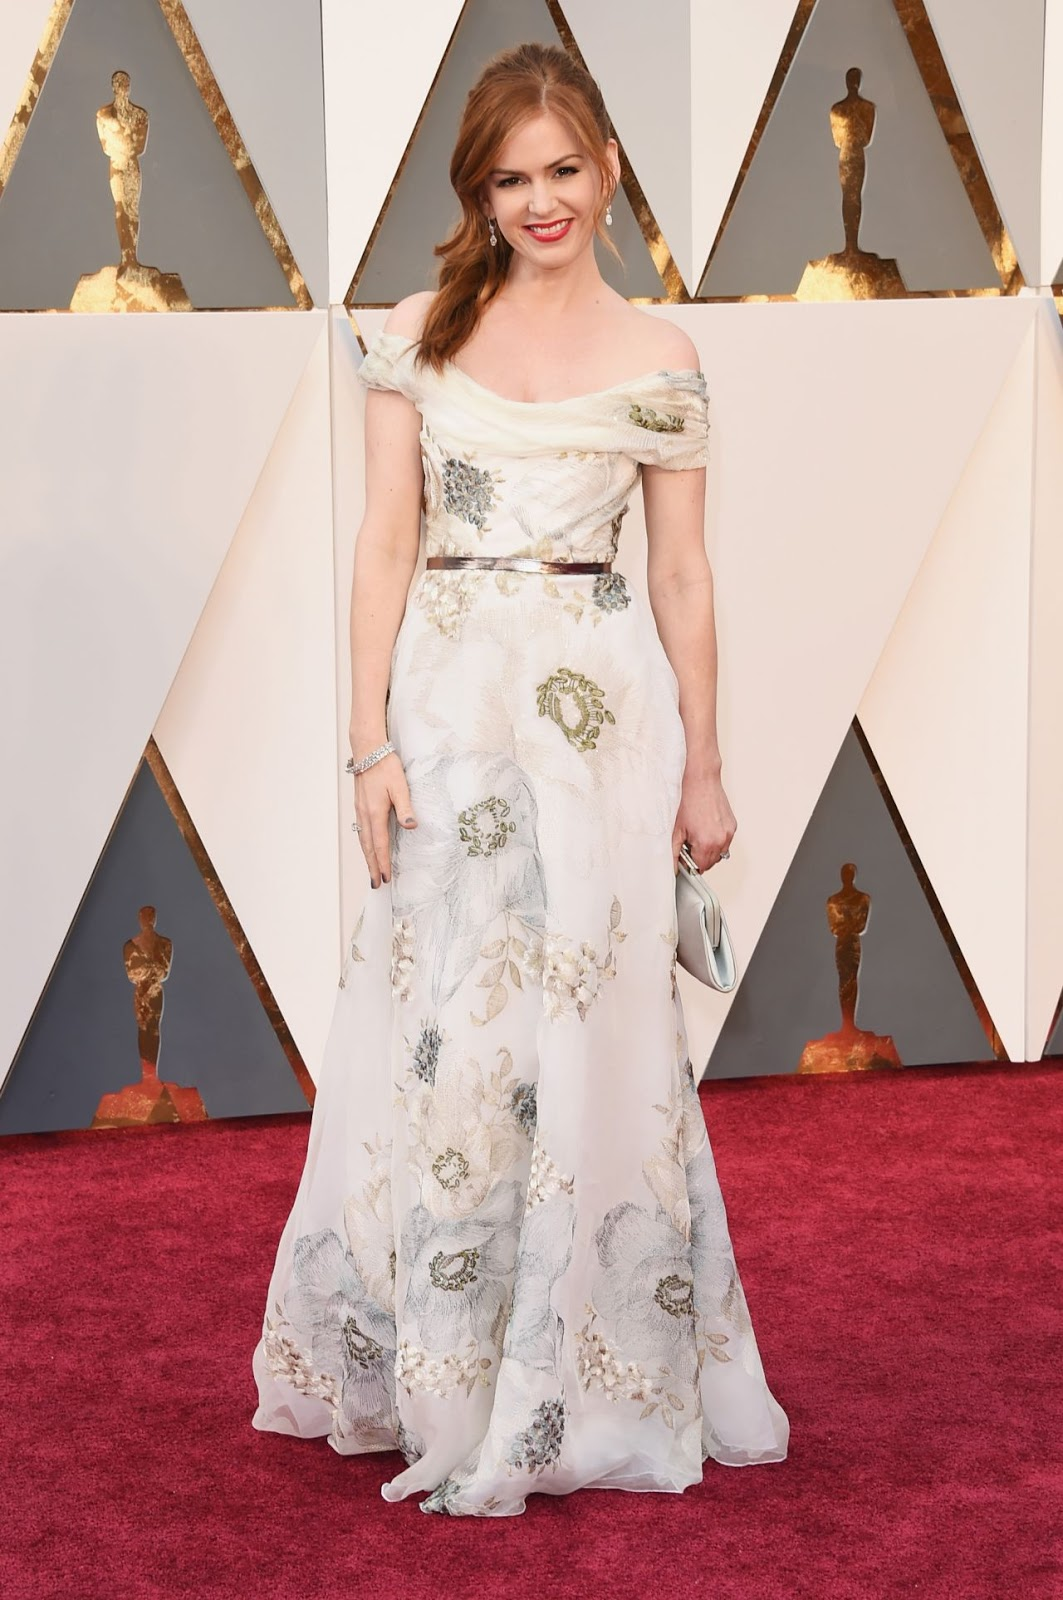 Isla Fisher in an off-shoulder gown at the 2016 Oscars